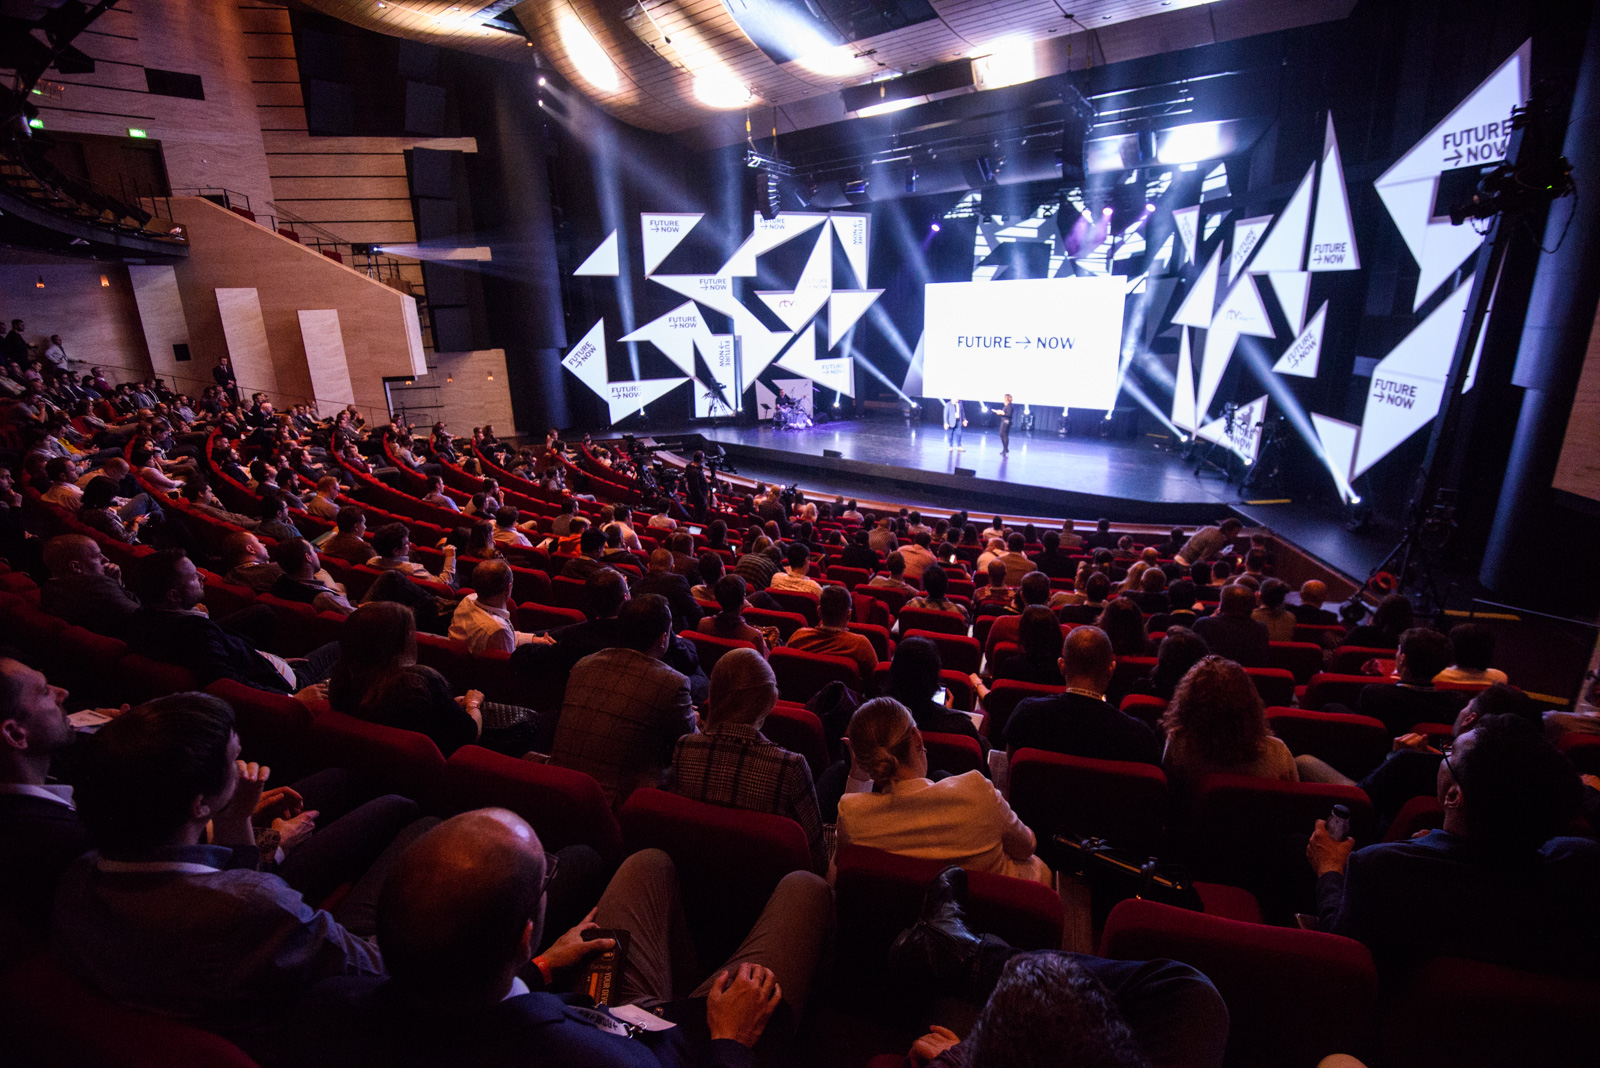 Startup Awards 2017, Slovak National Theatre